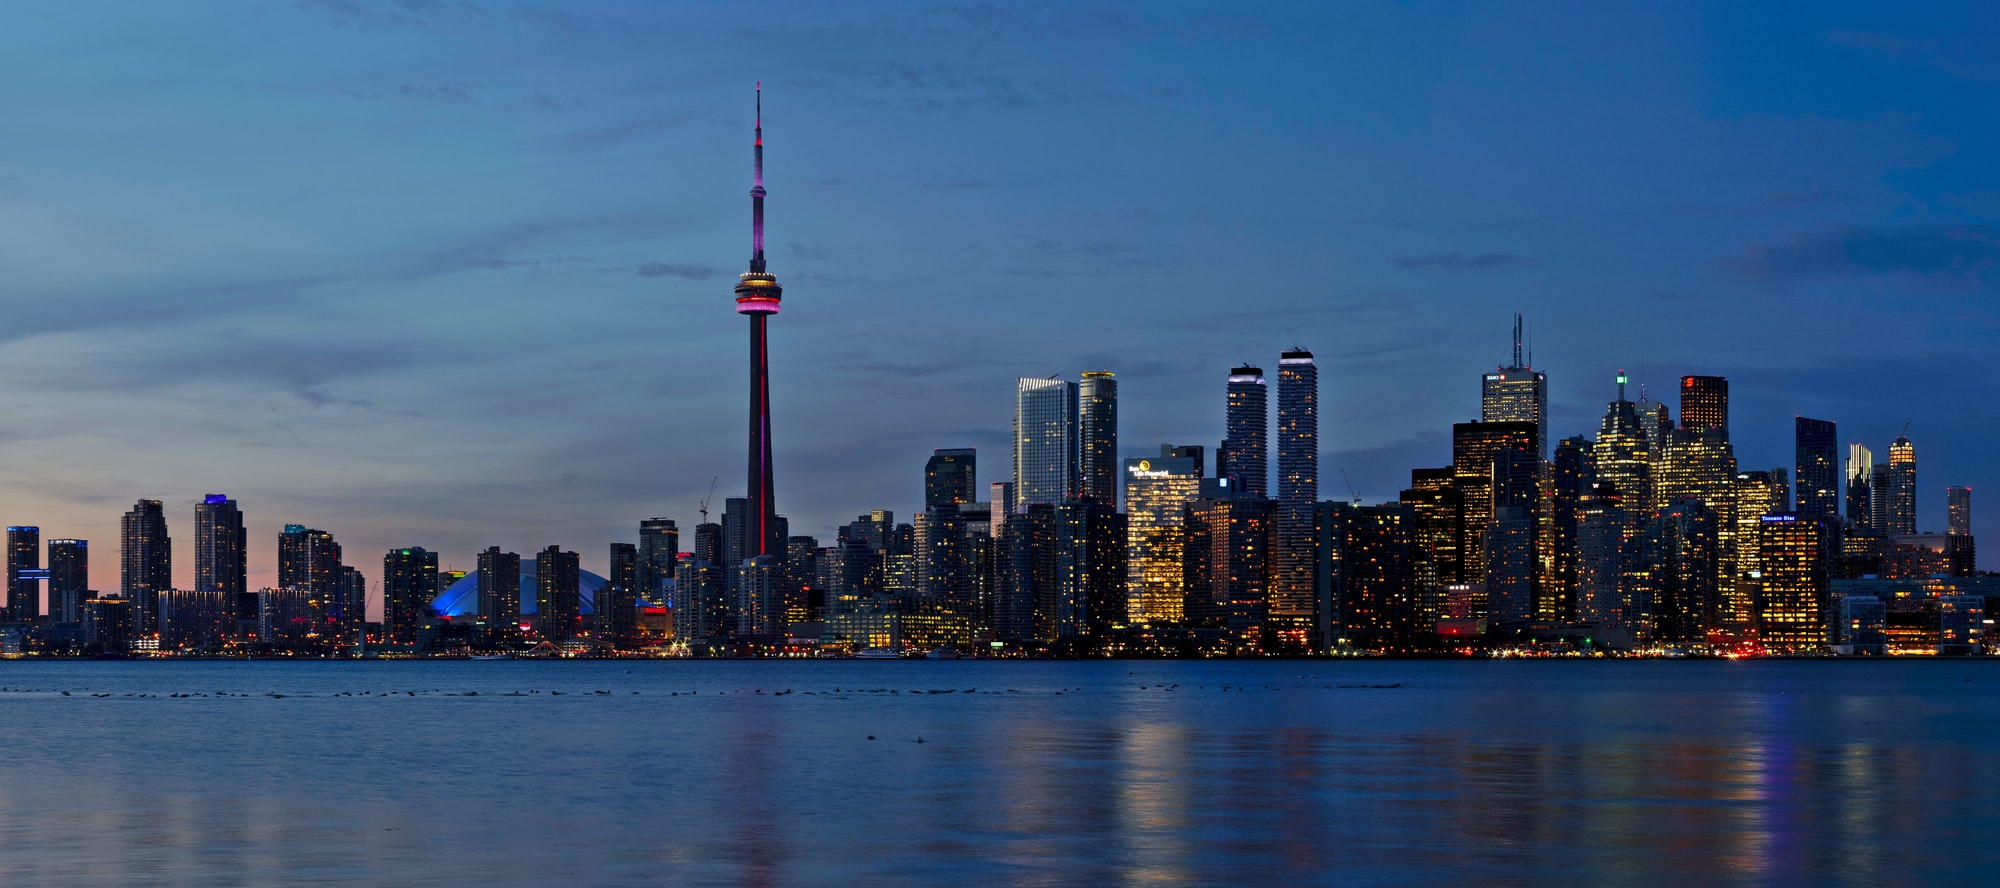 High-res panorama of the Toronto skyline taken from the Toronto Islands.